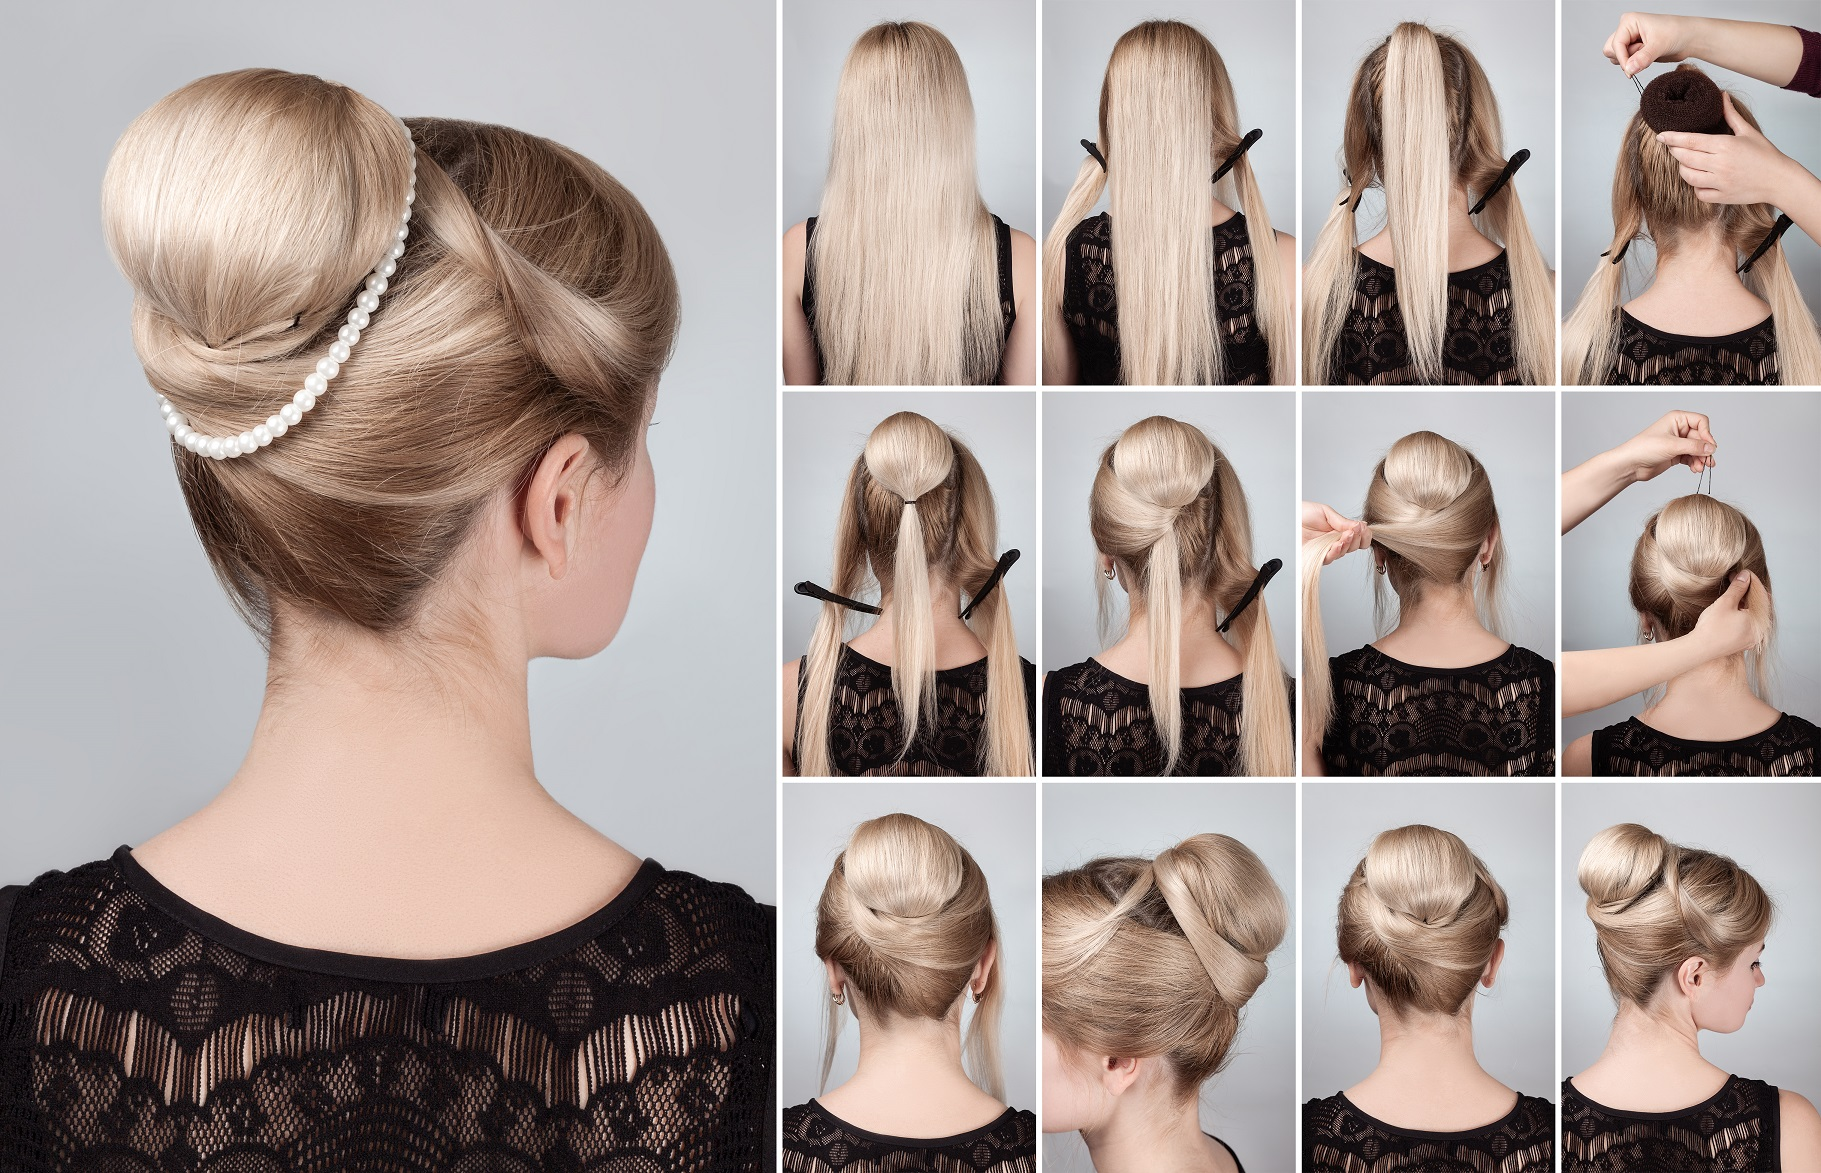 Decisions, Decisions – Choosing A Formal Hairstyle